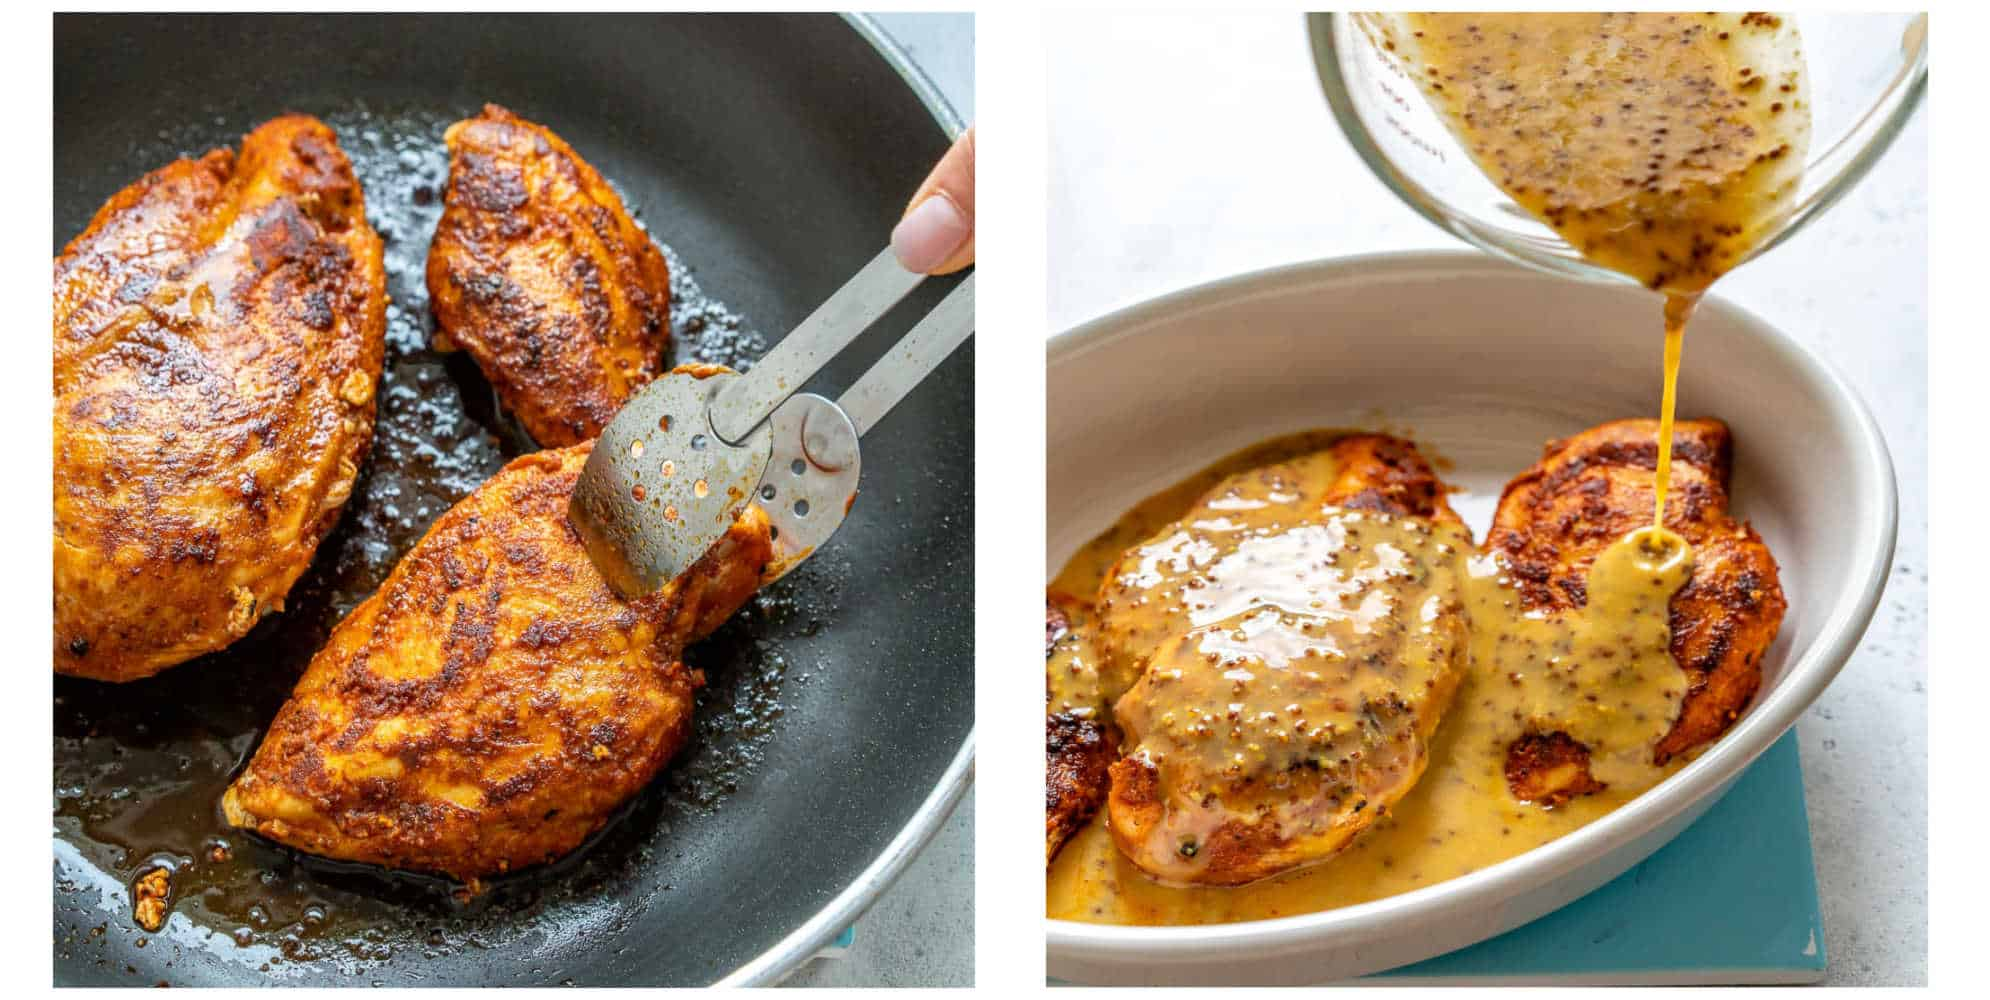 collage of chicken breast cooked in pan on the left and mustard marinade being poured on chicken on the right